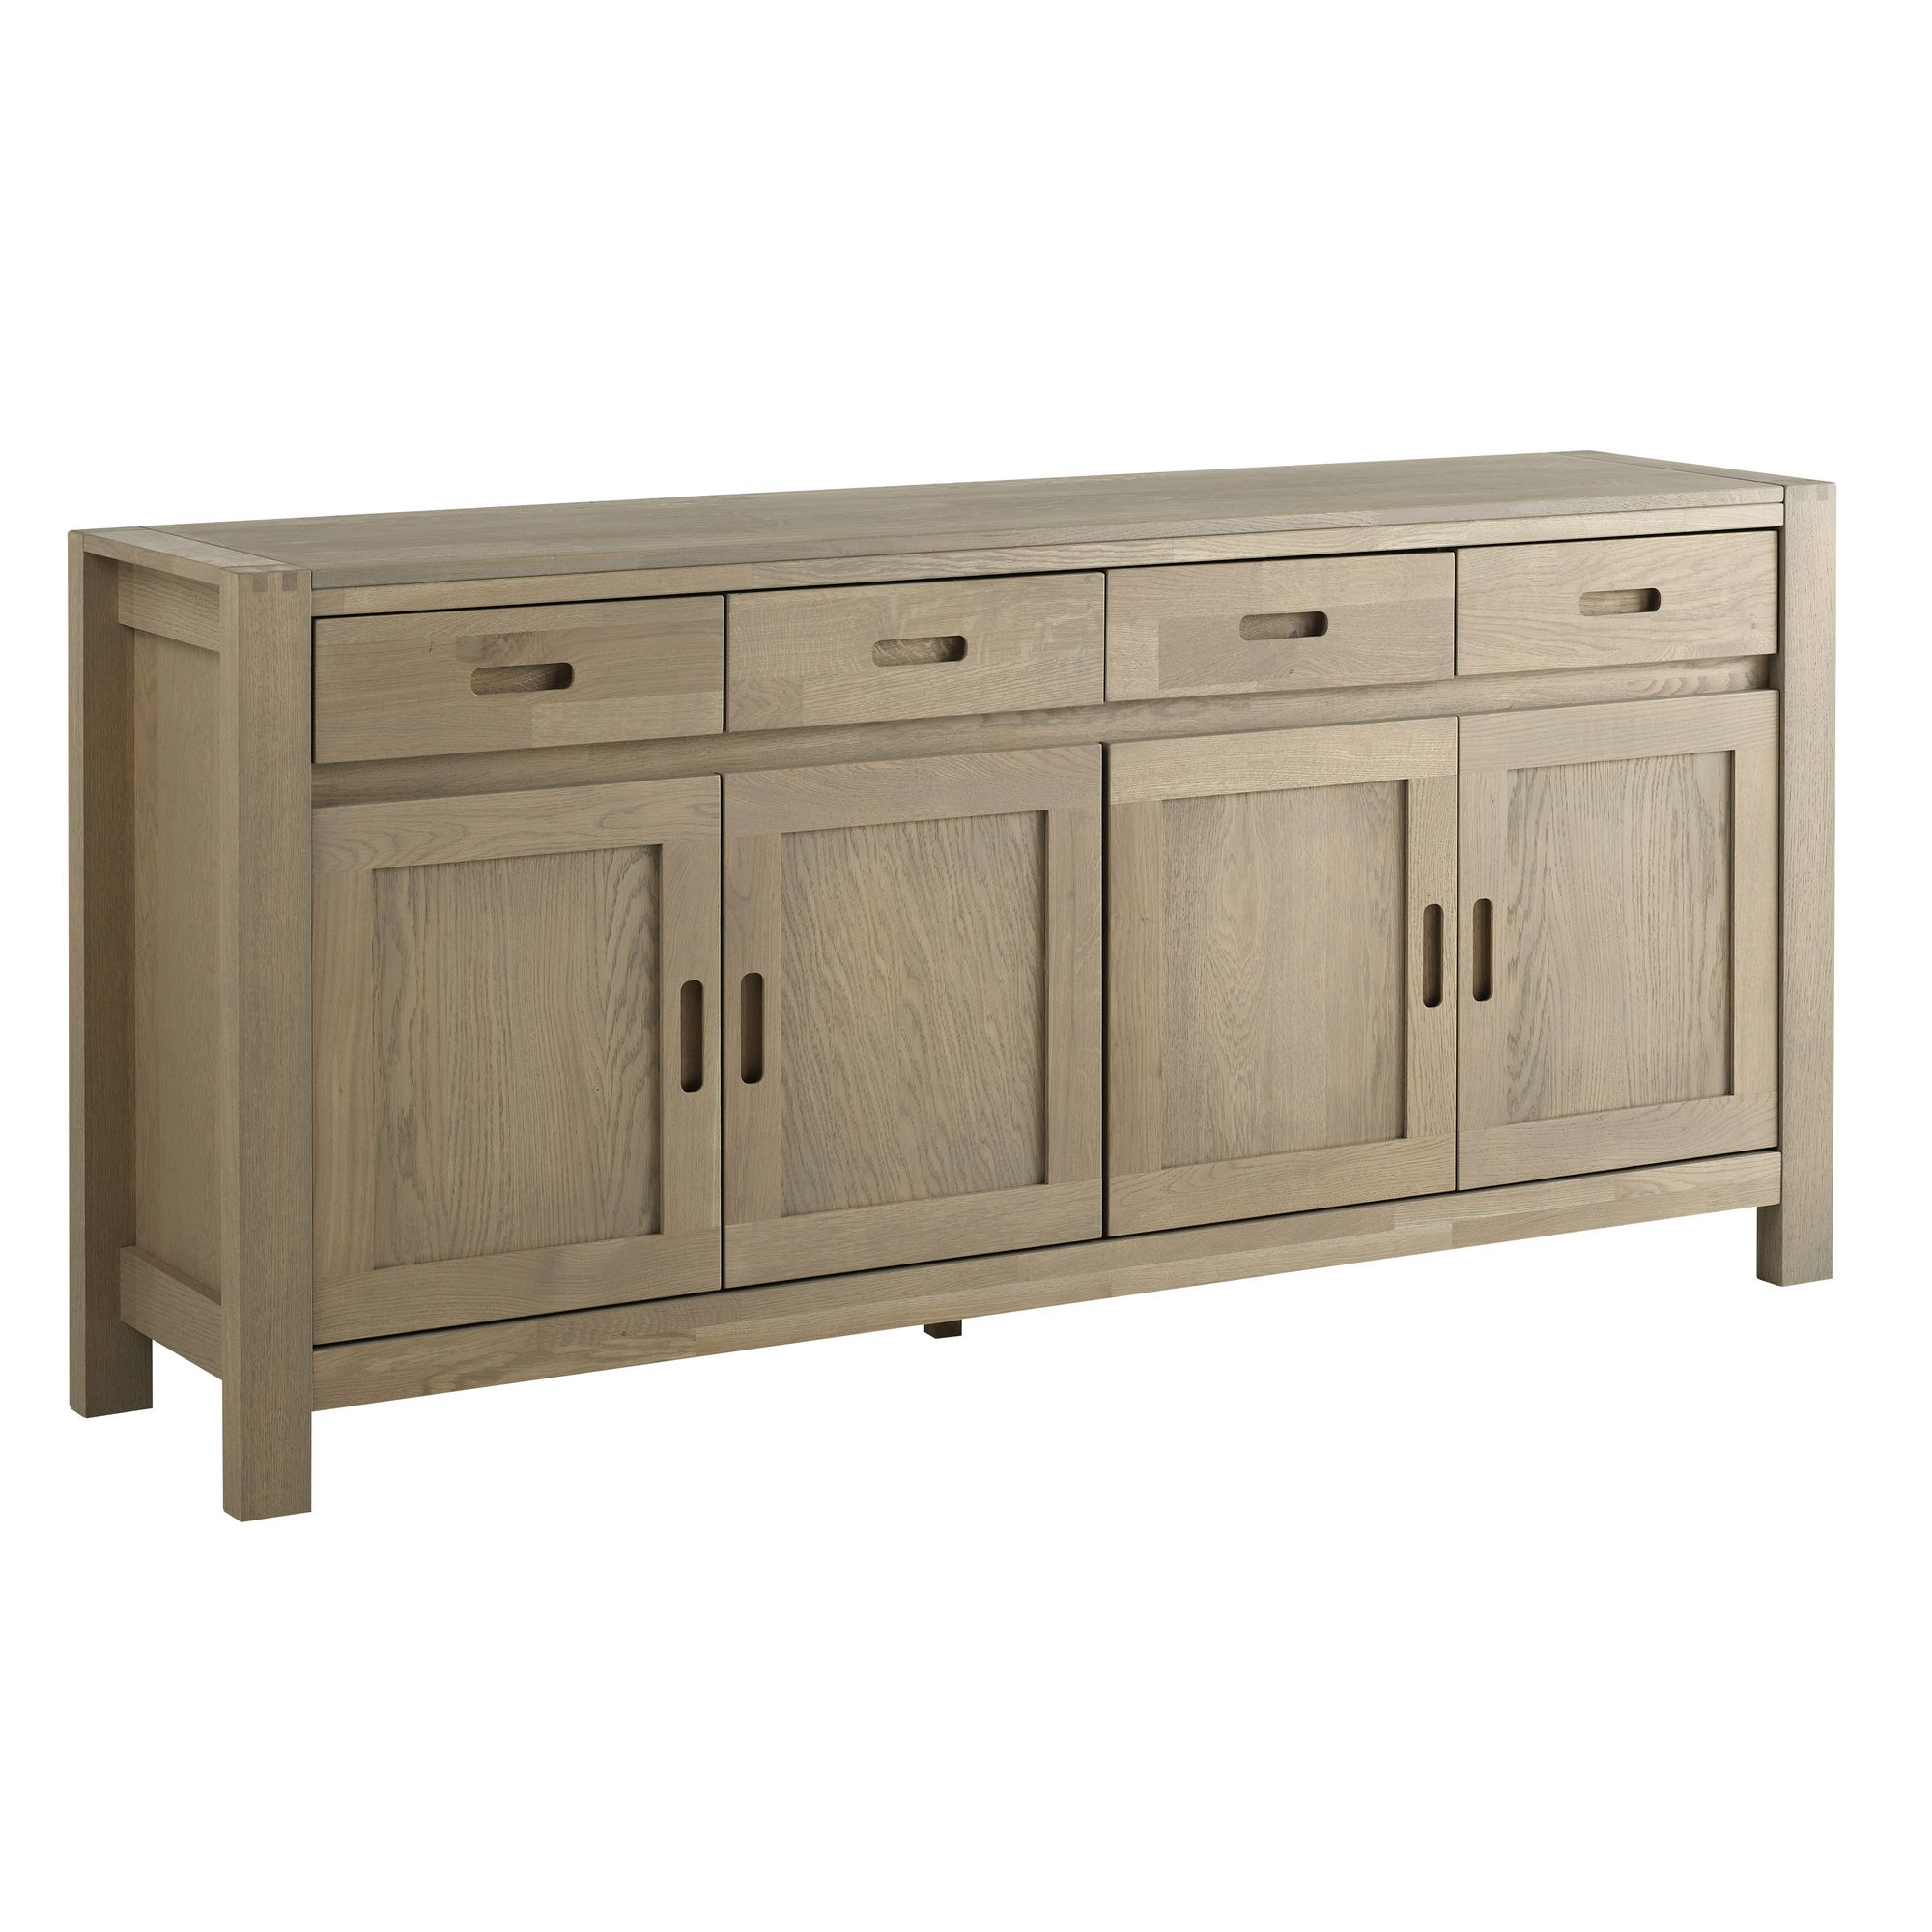 Parisot Ethan 4 Door Sideboard at Tesco Direct